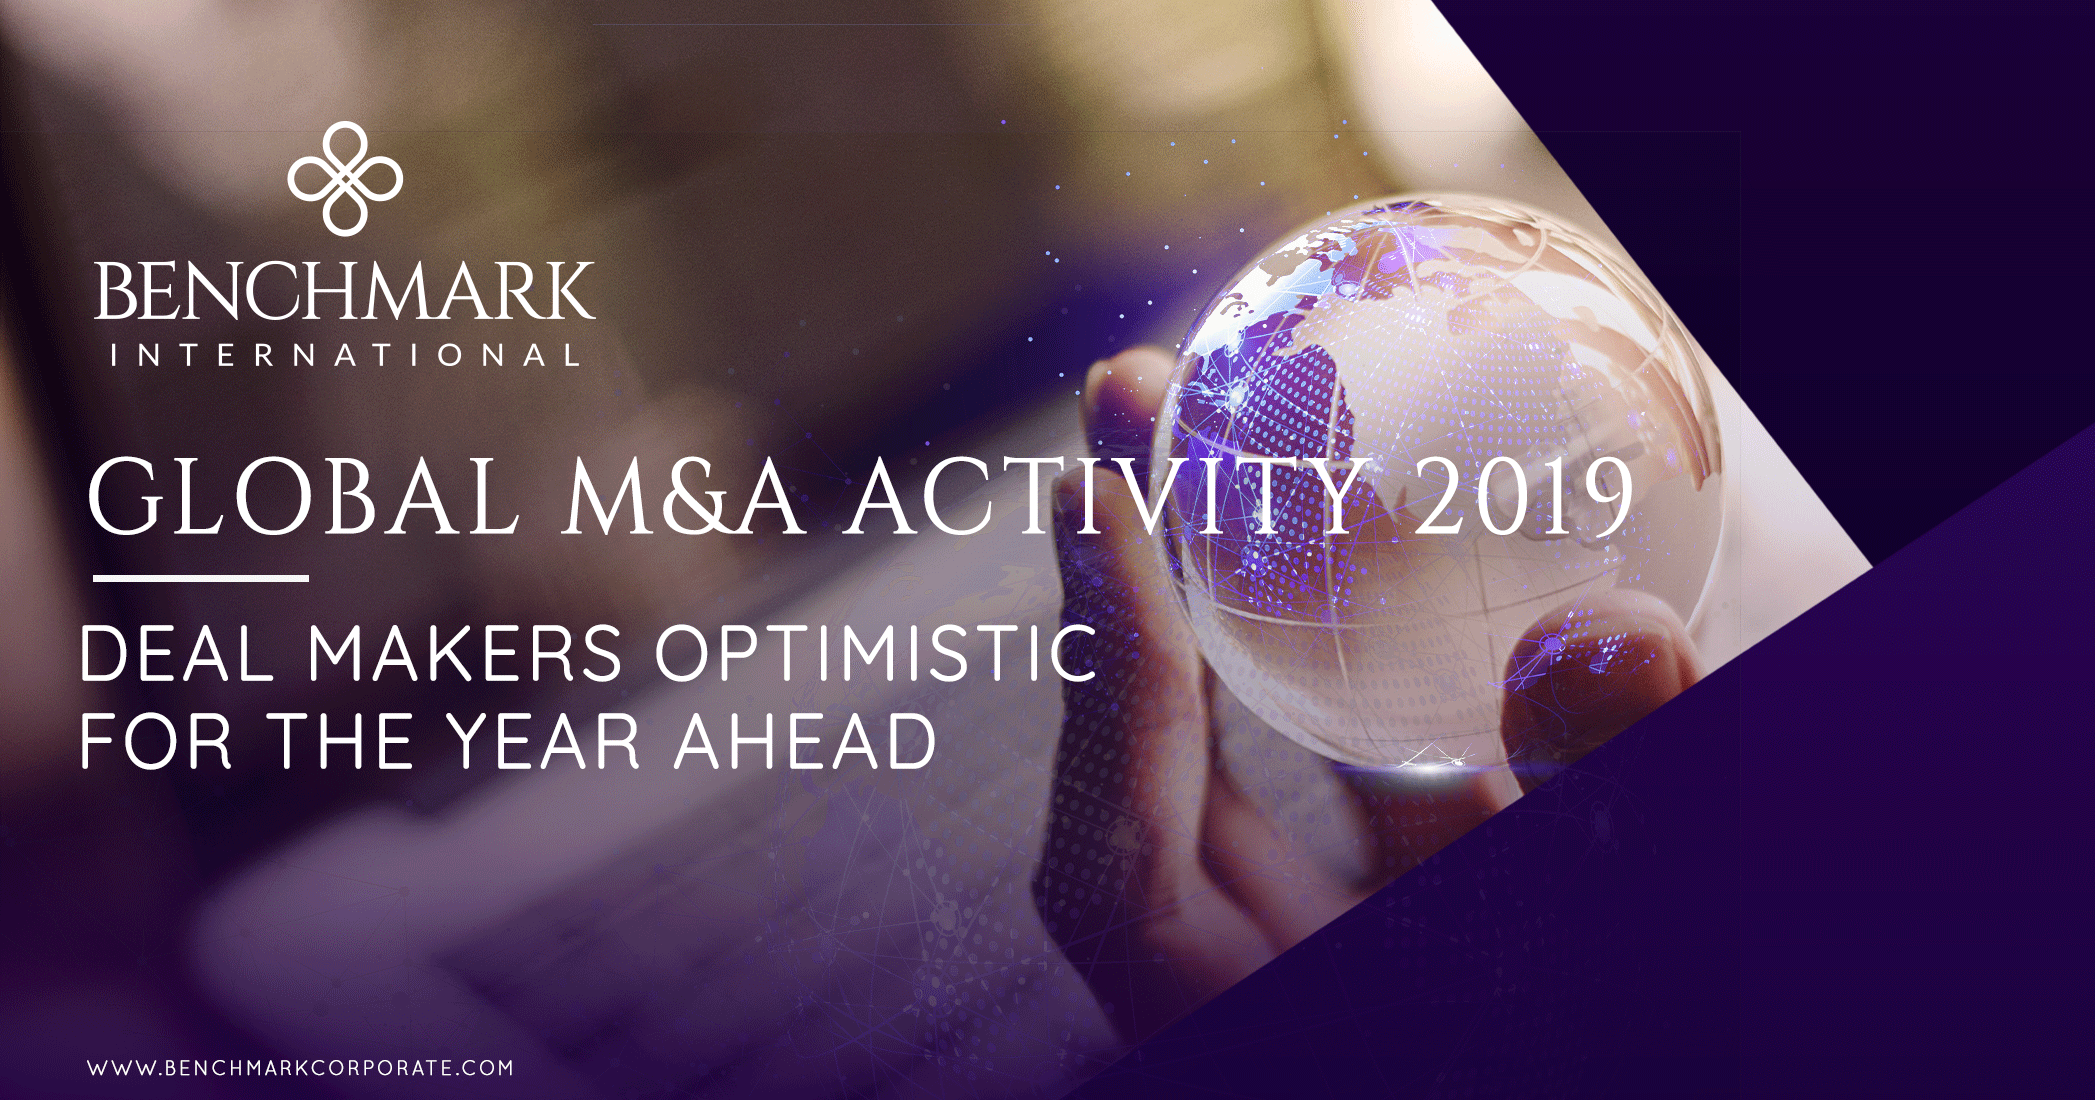 Global M&A Activity 2019 – Deal Makers Optimistic for the Year Ahead